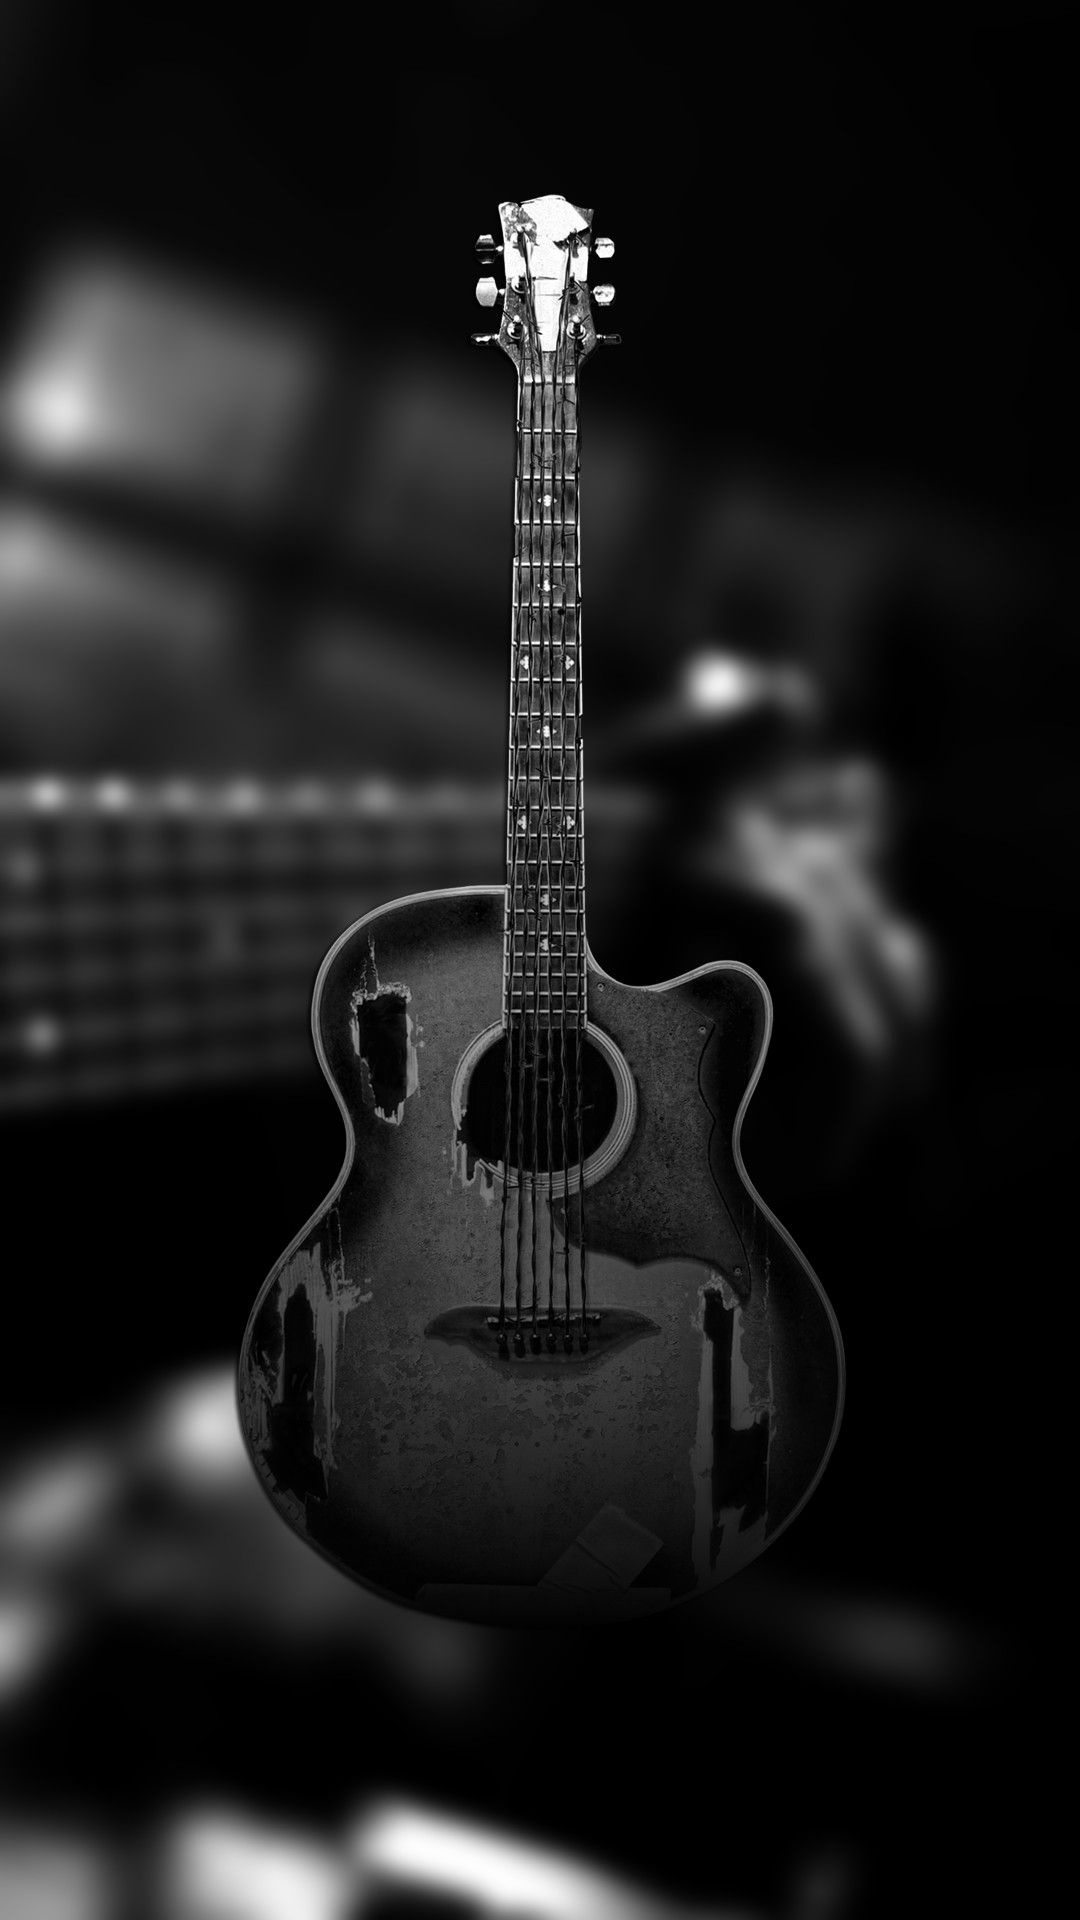 1080x1920 Martin Guitar Desktop Wallpaper (72+ images)